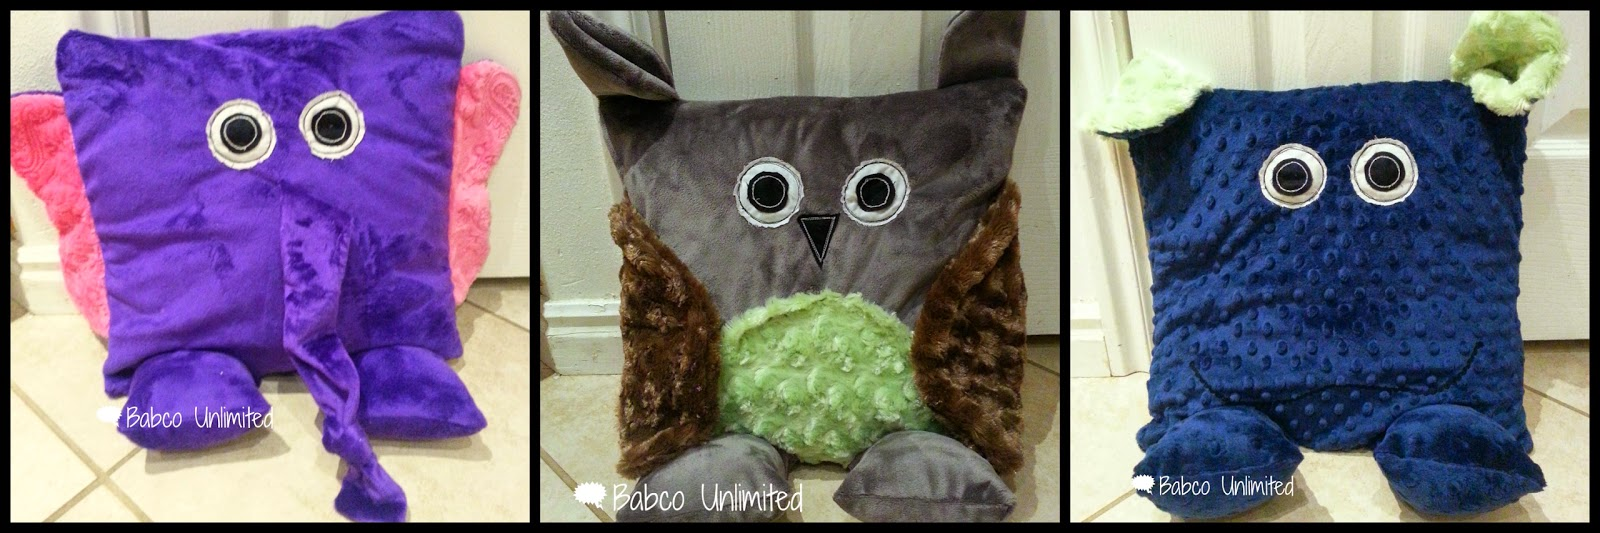 BabcoUnlimited.blogspot.com - Animal Pillow Pets